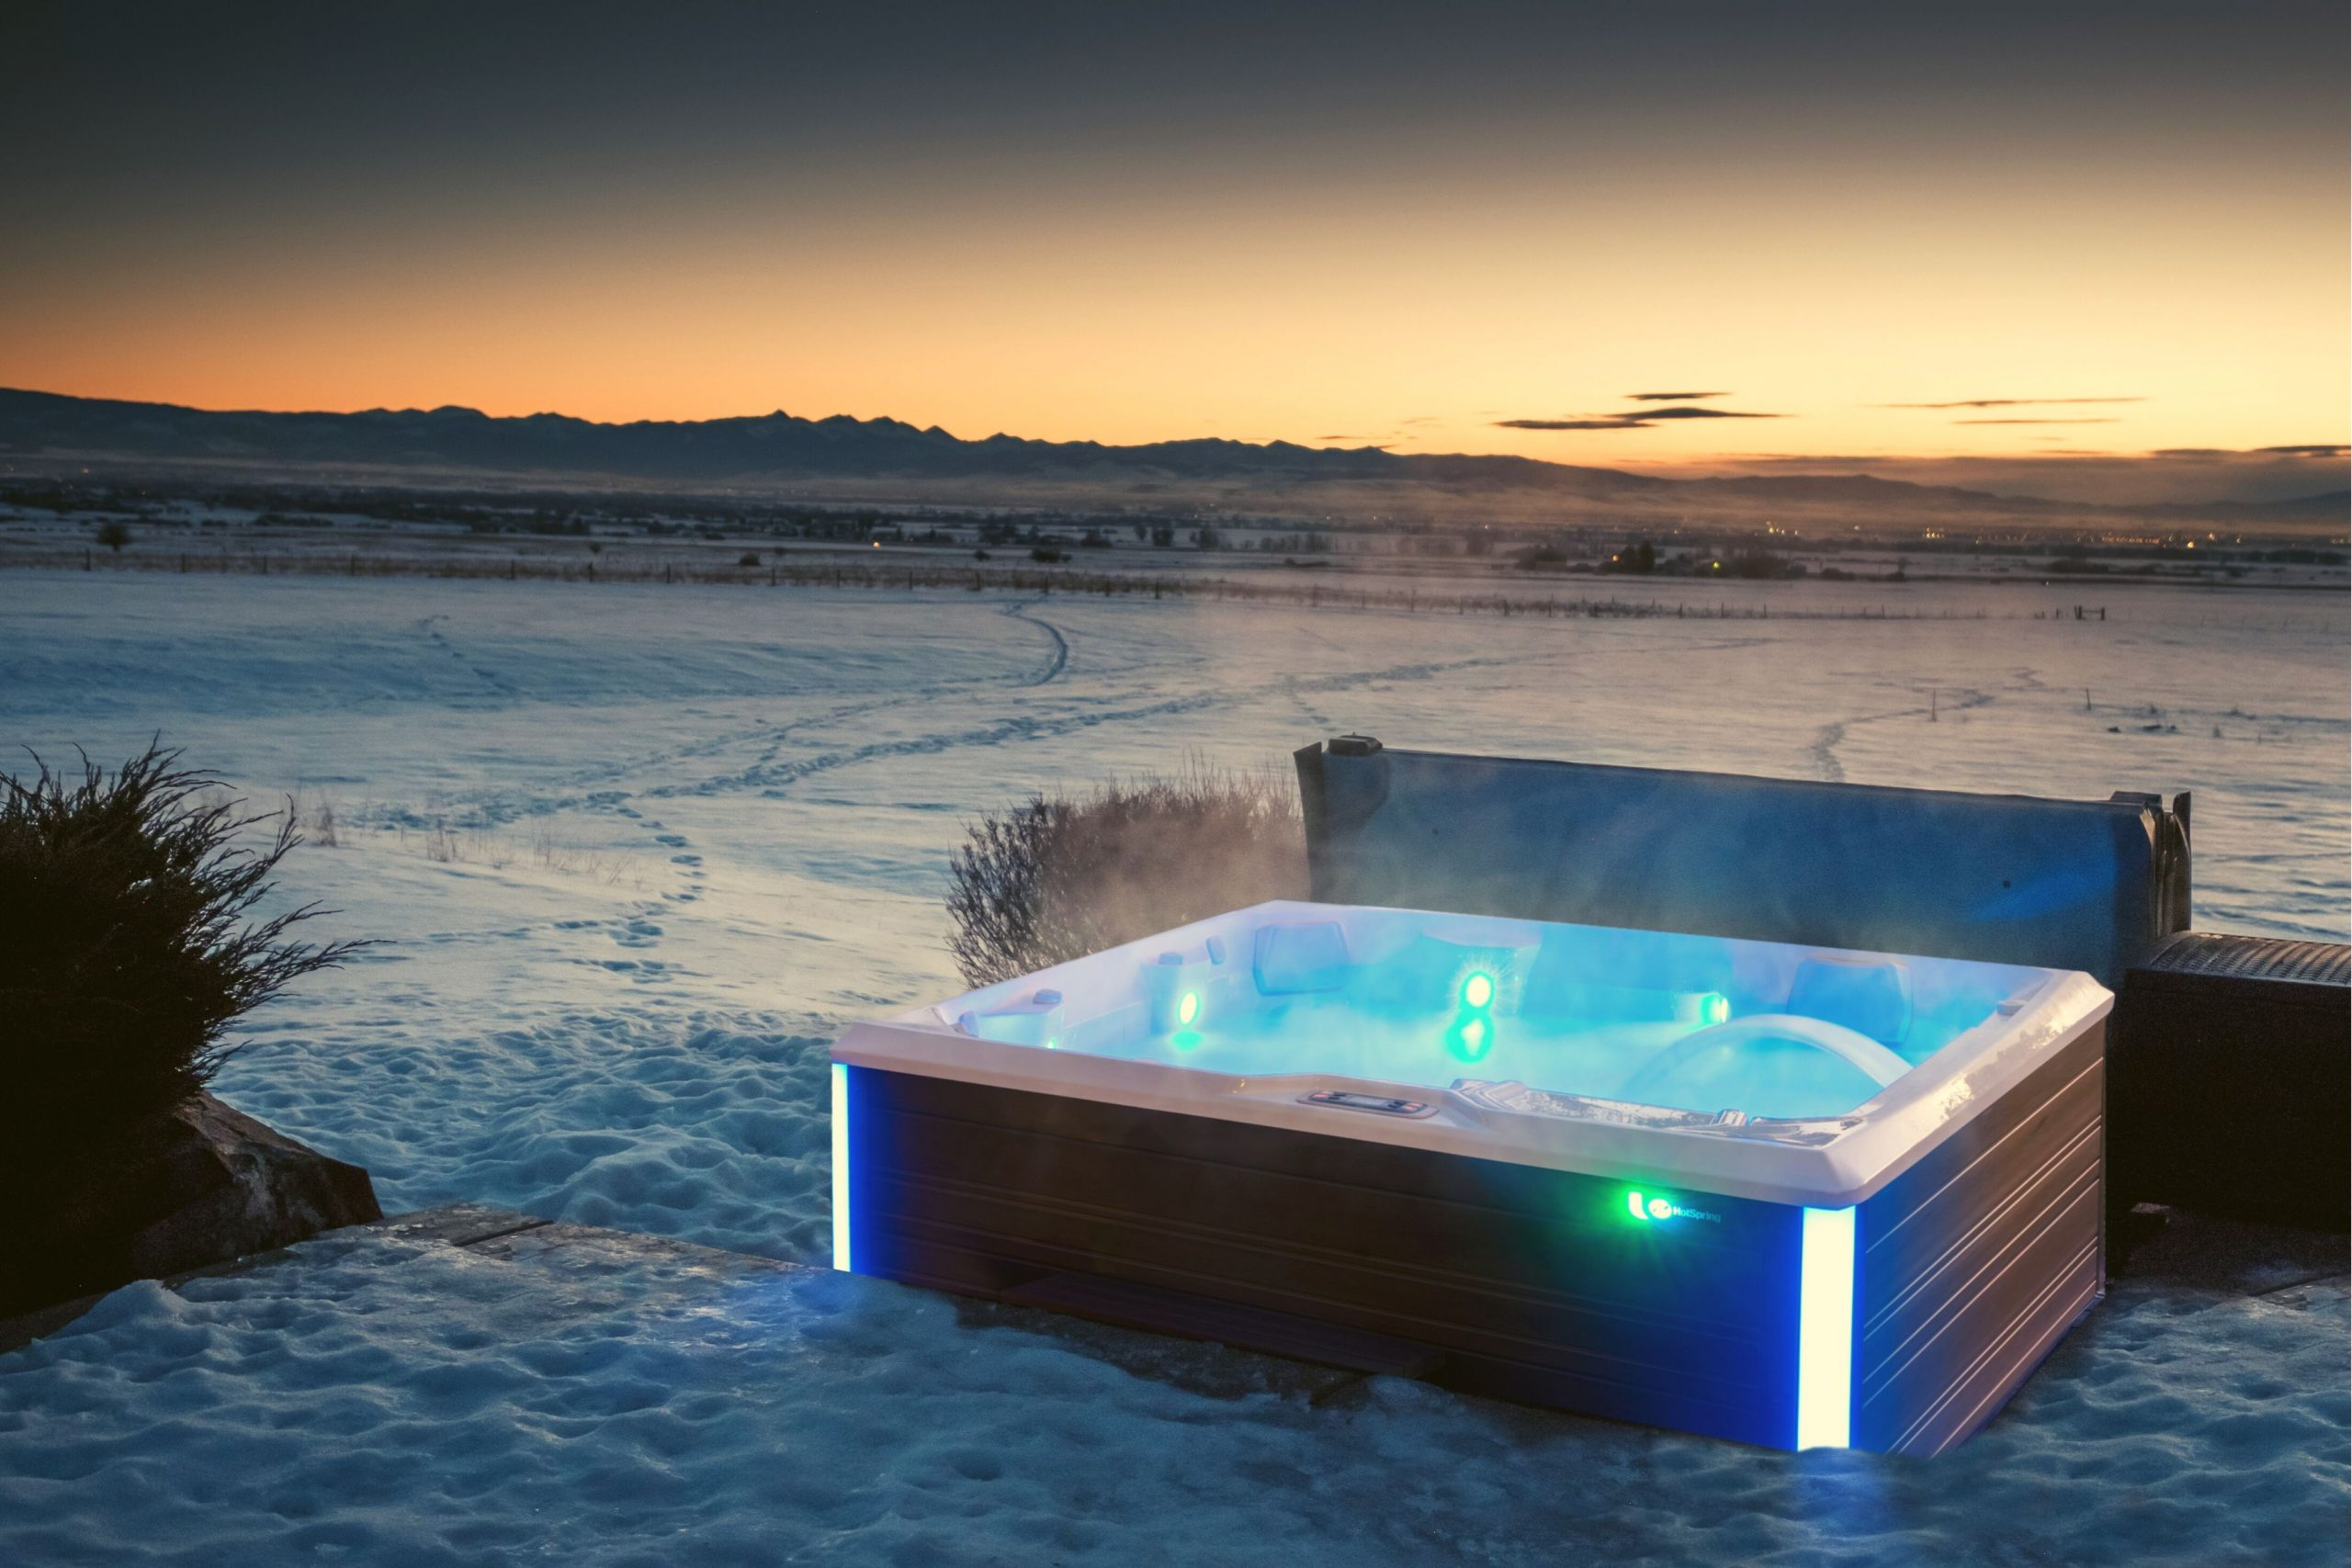 The Surprising Ways a Hot Tub Can Help Vanquish the Winter Blues